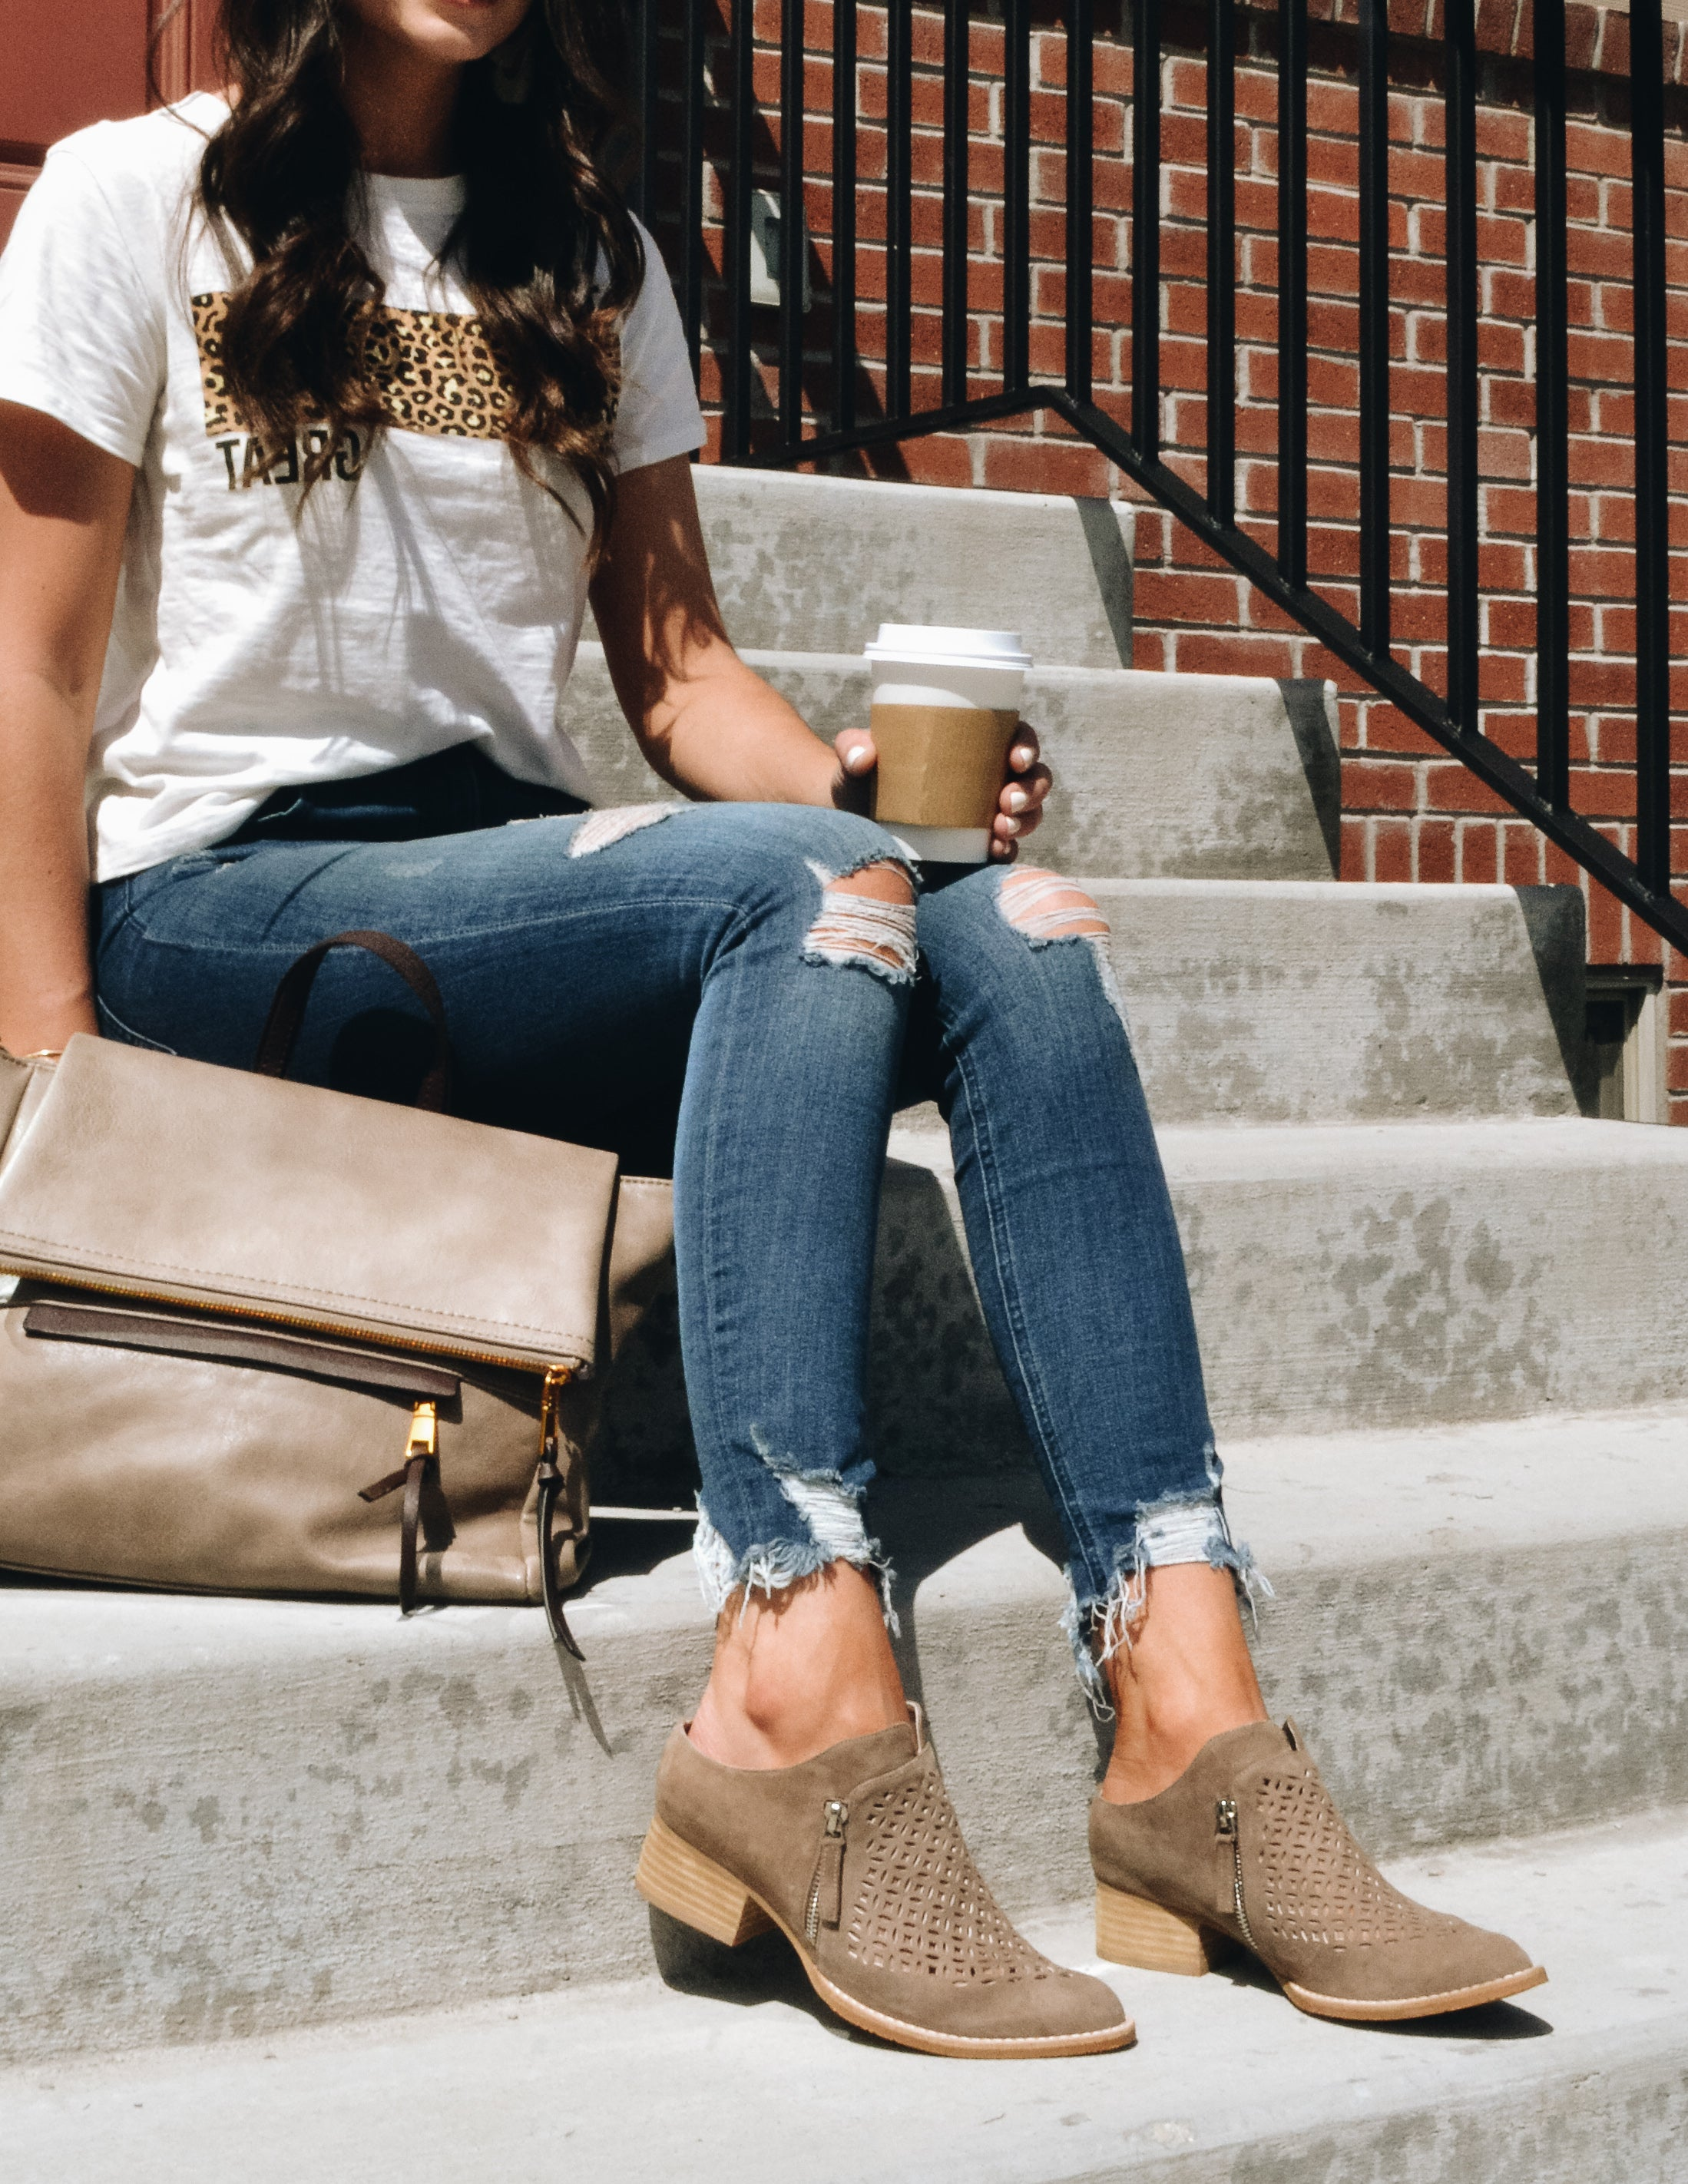 Model sitting on concrete steps holding coffee and taupe bag wearing denim and white tee